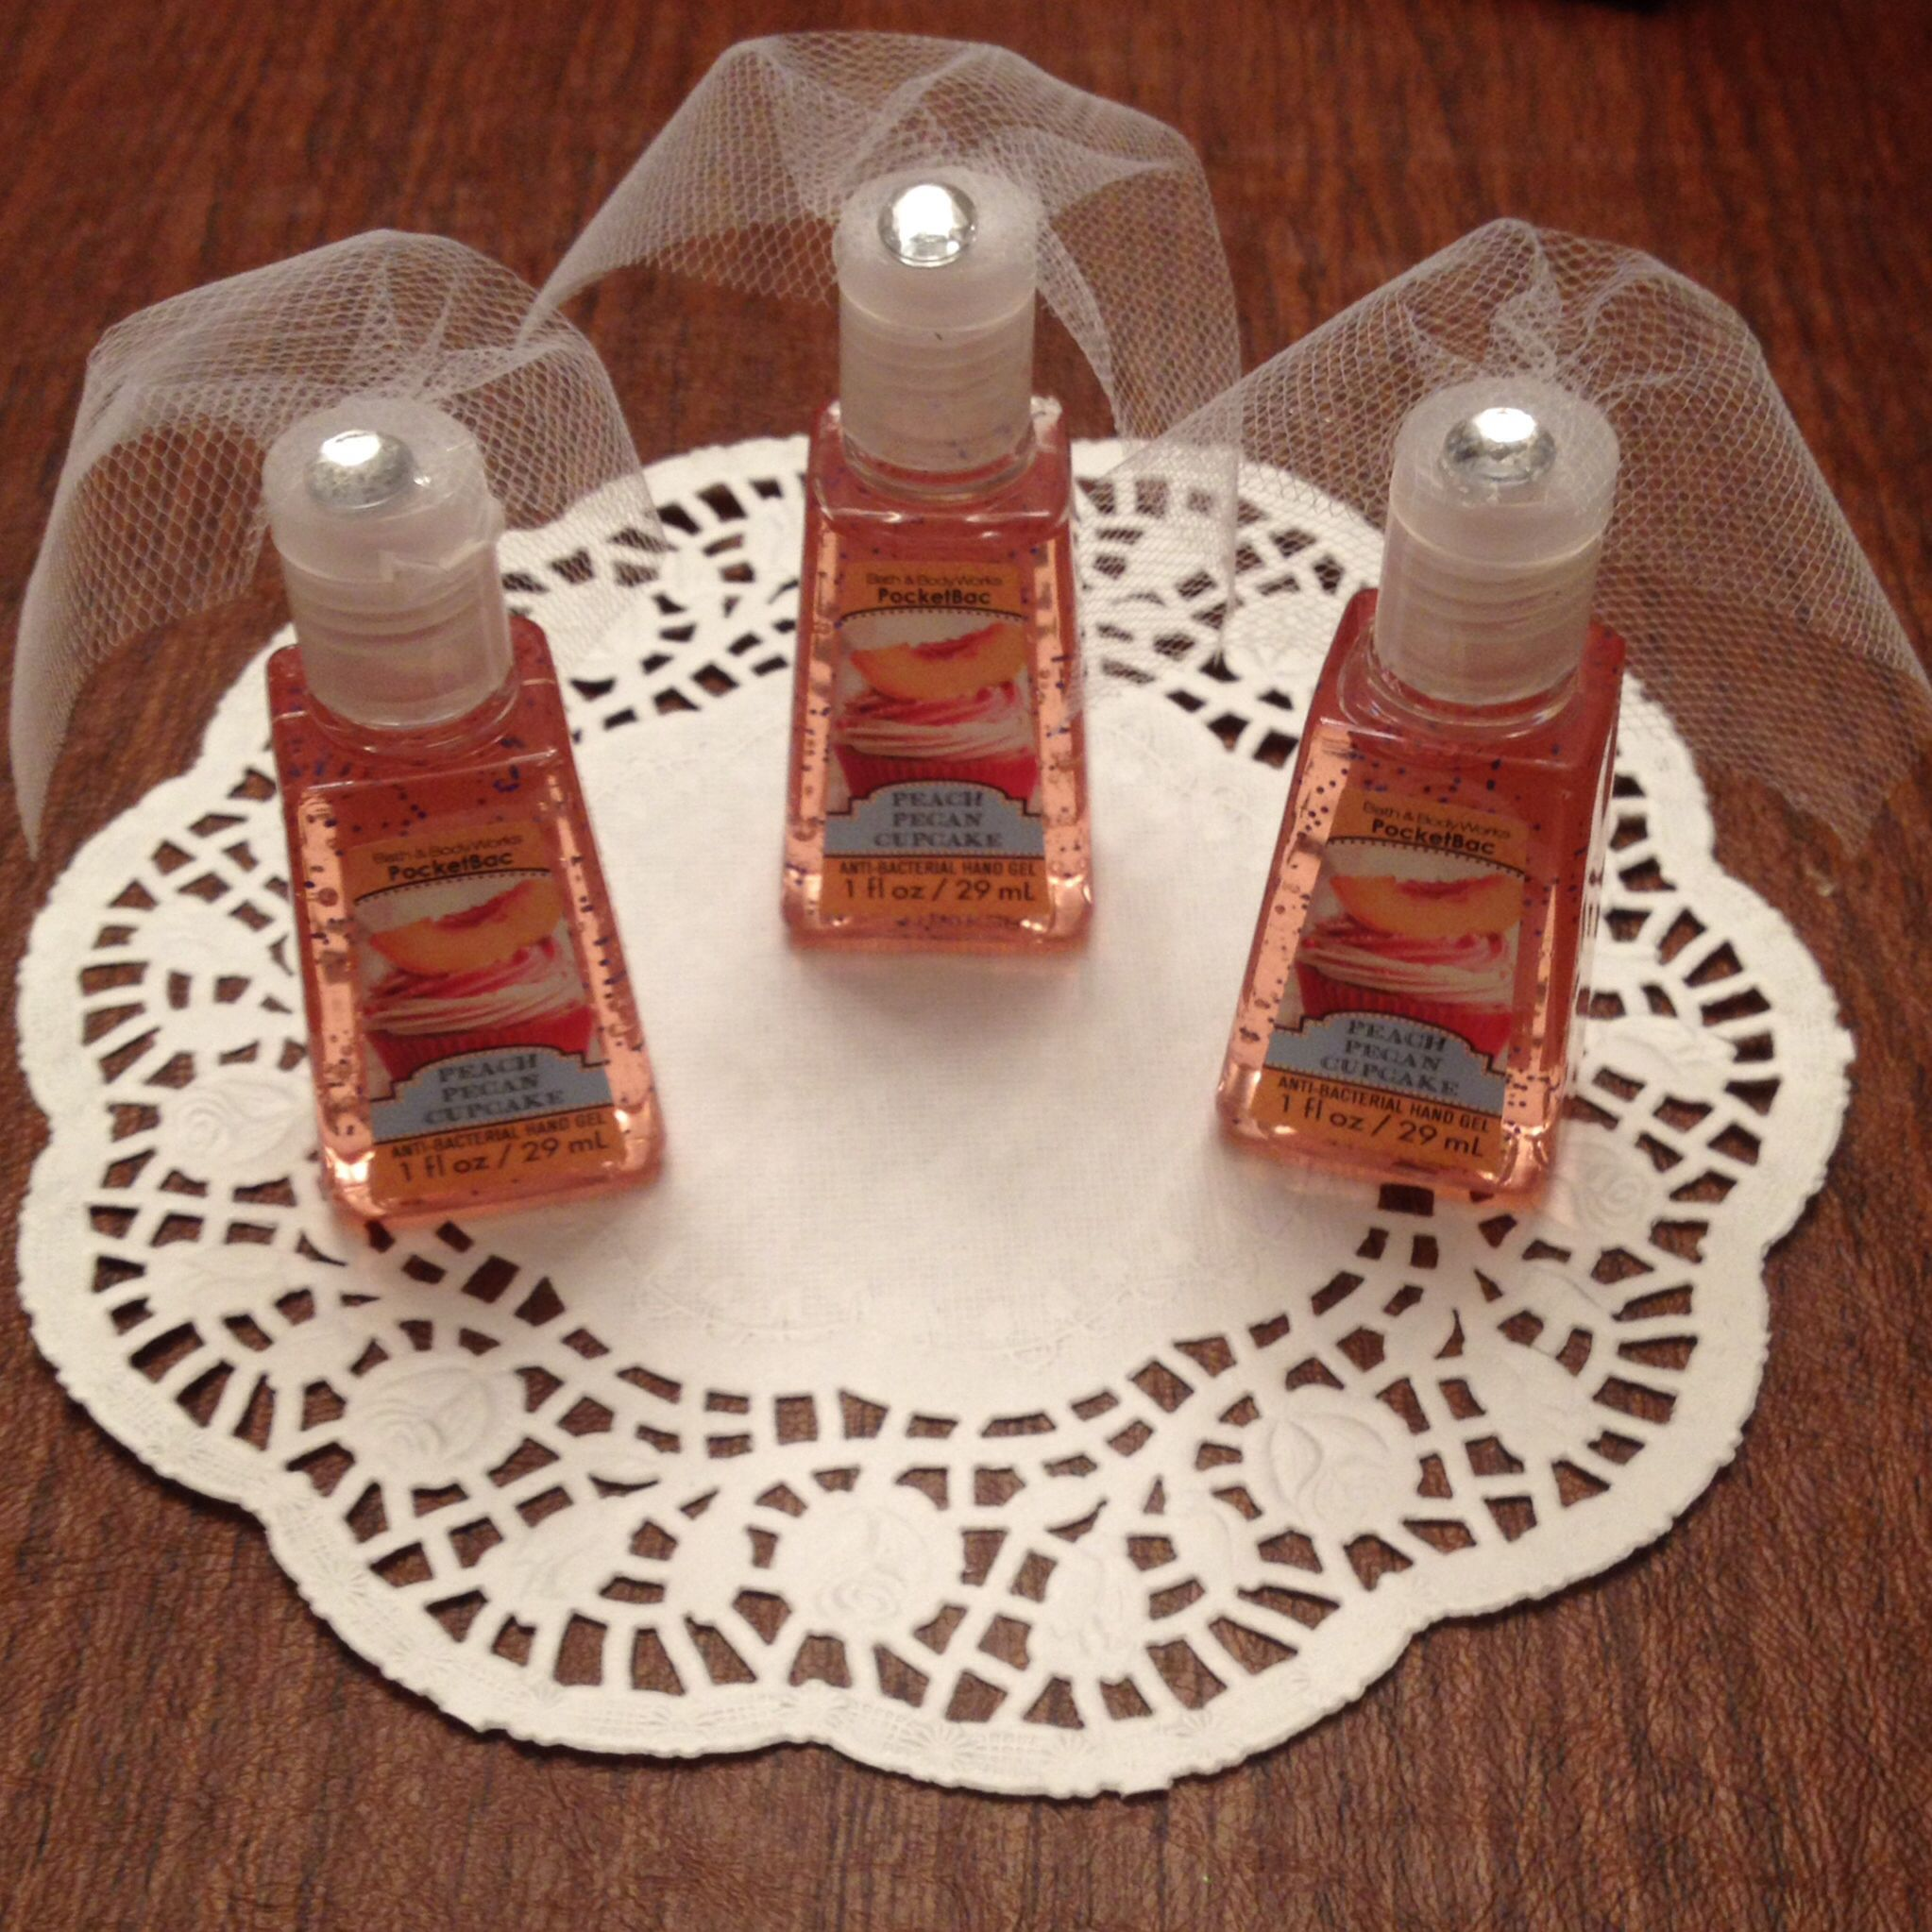 you and bridal ideas candy trend shower wedding diy popular yourself uncategorized martha fall unbelievable can for to picture make that favor favors sxs apples stewart